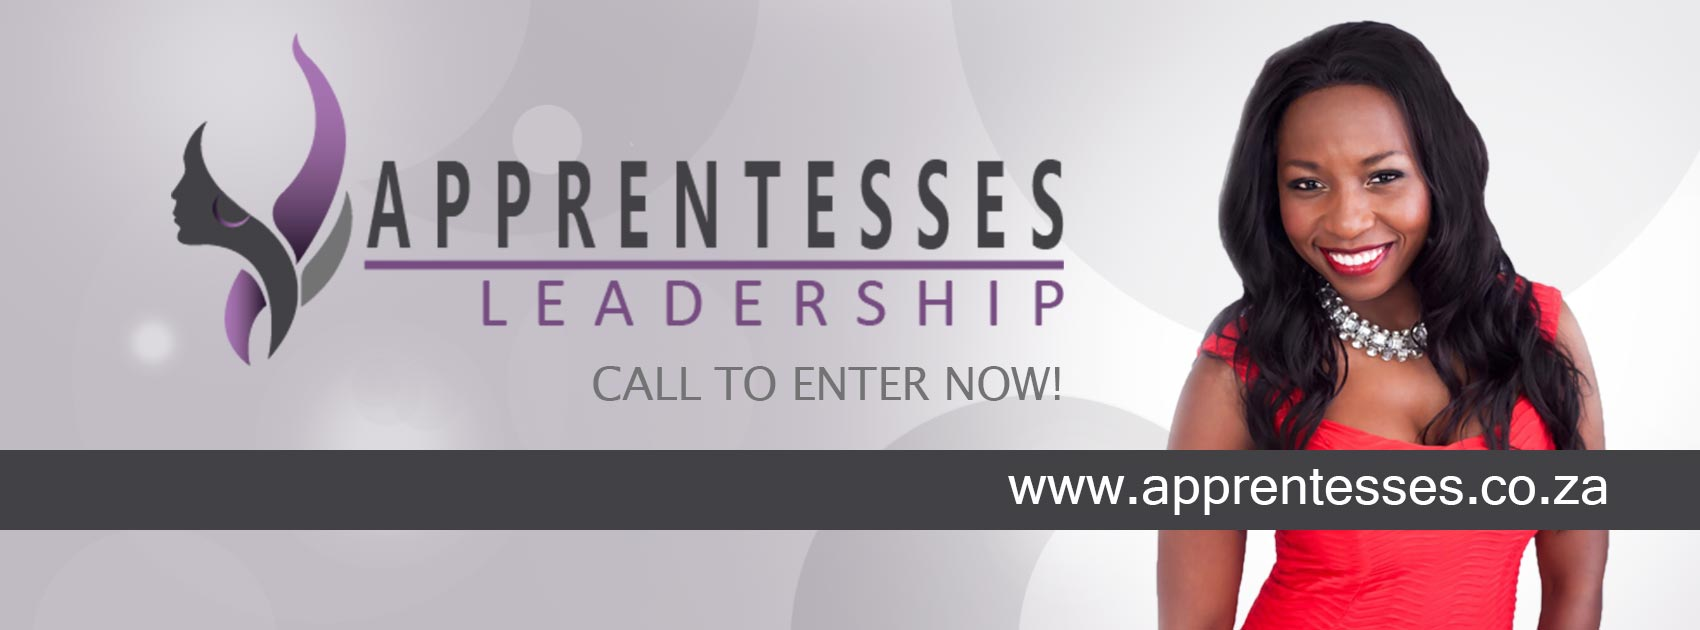 Peri-Peri-Creative-Apprentesses leadership Facebook Banner2